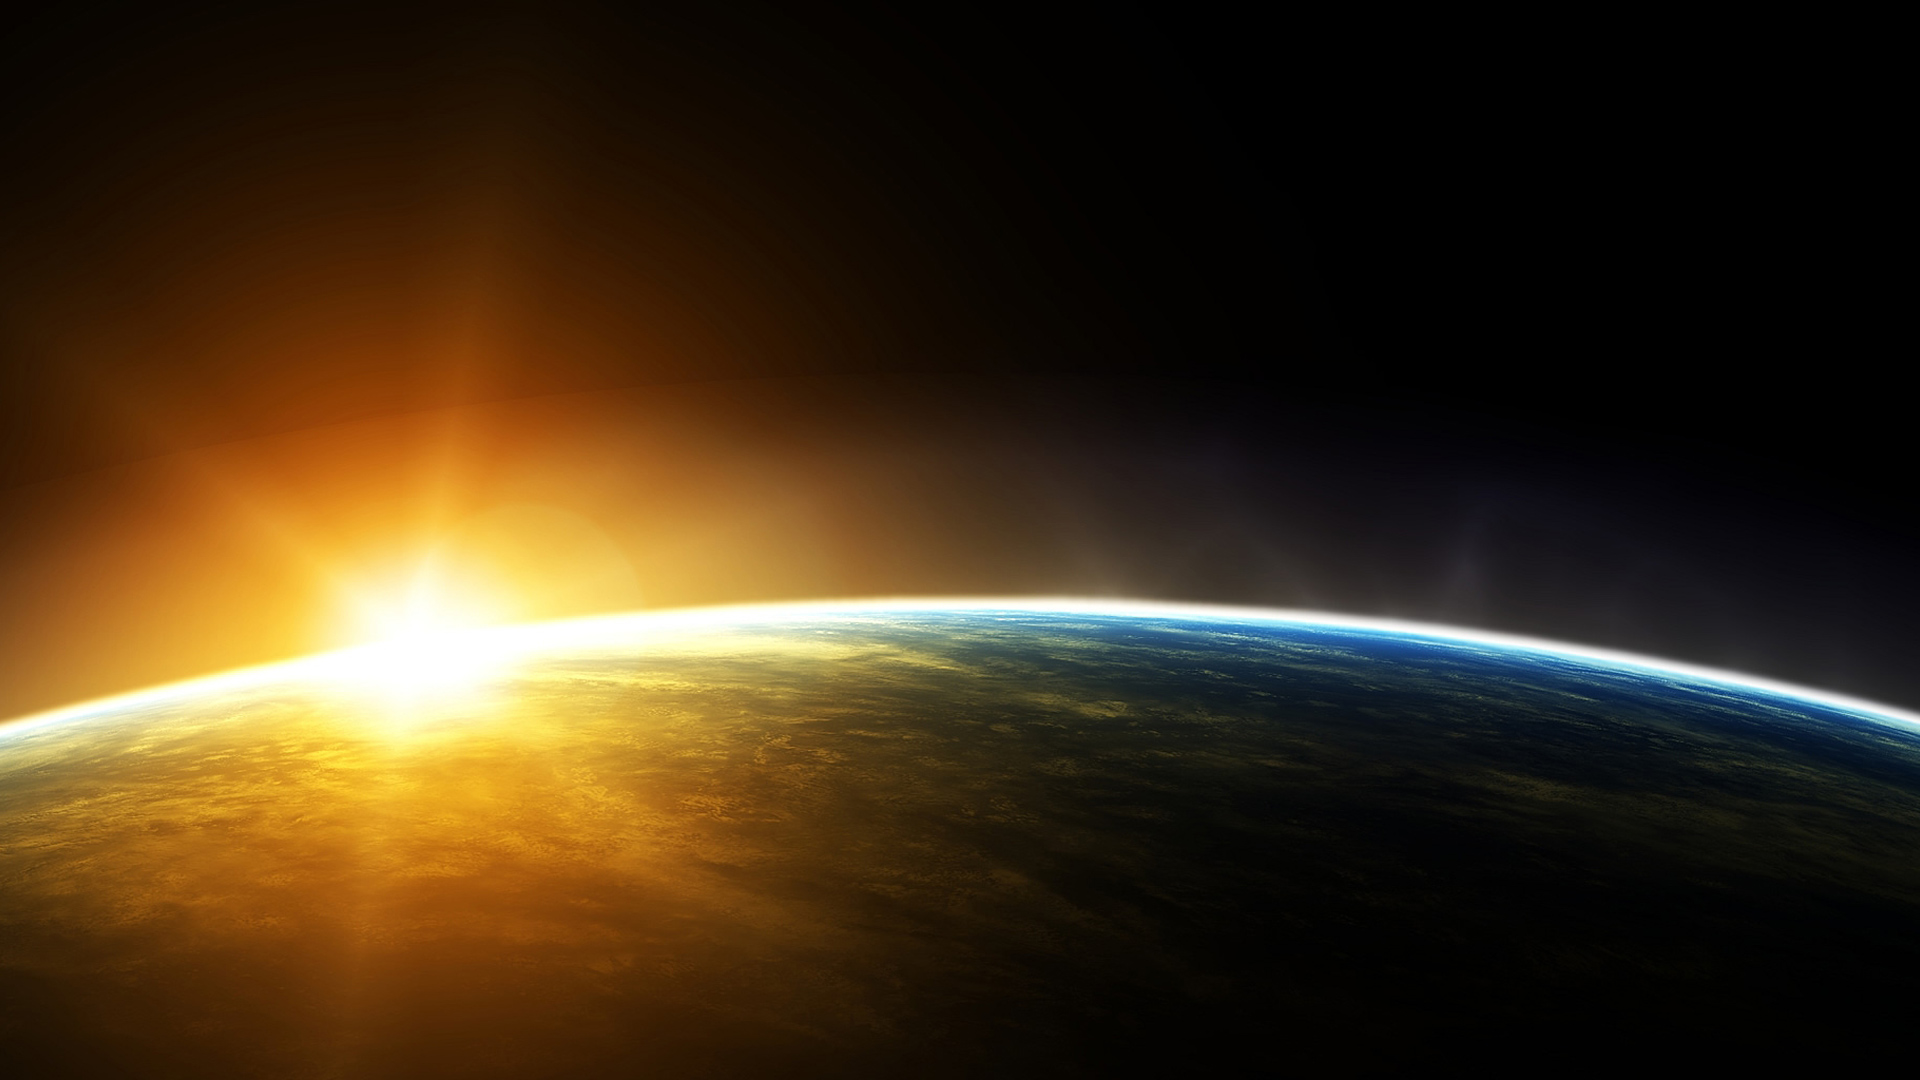 Space HD Wallpapers 1920x1080